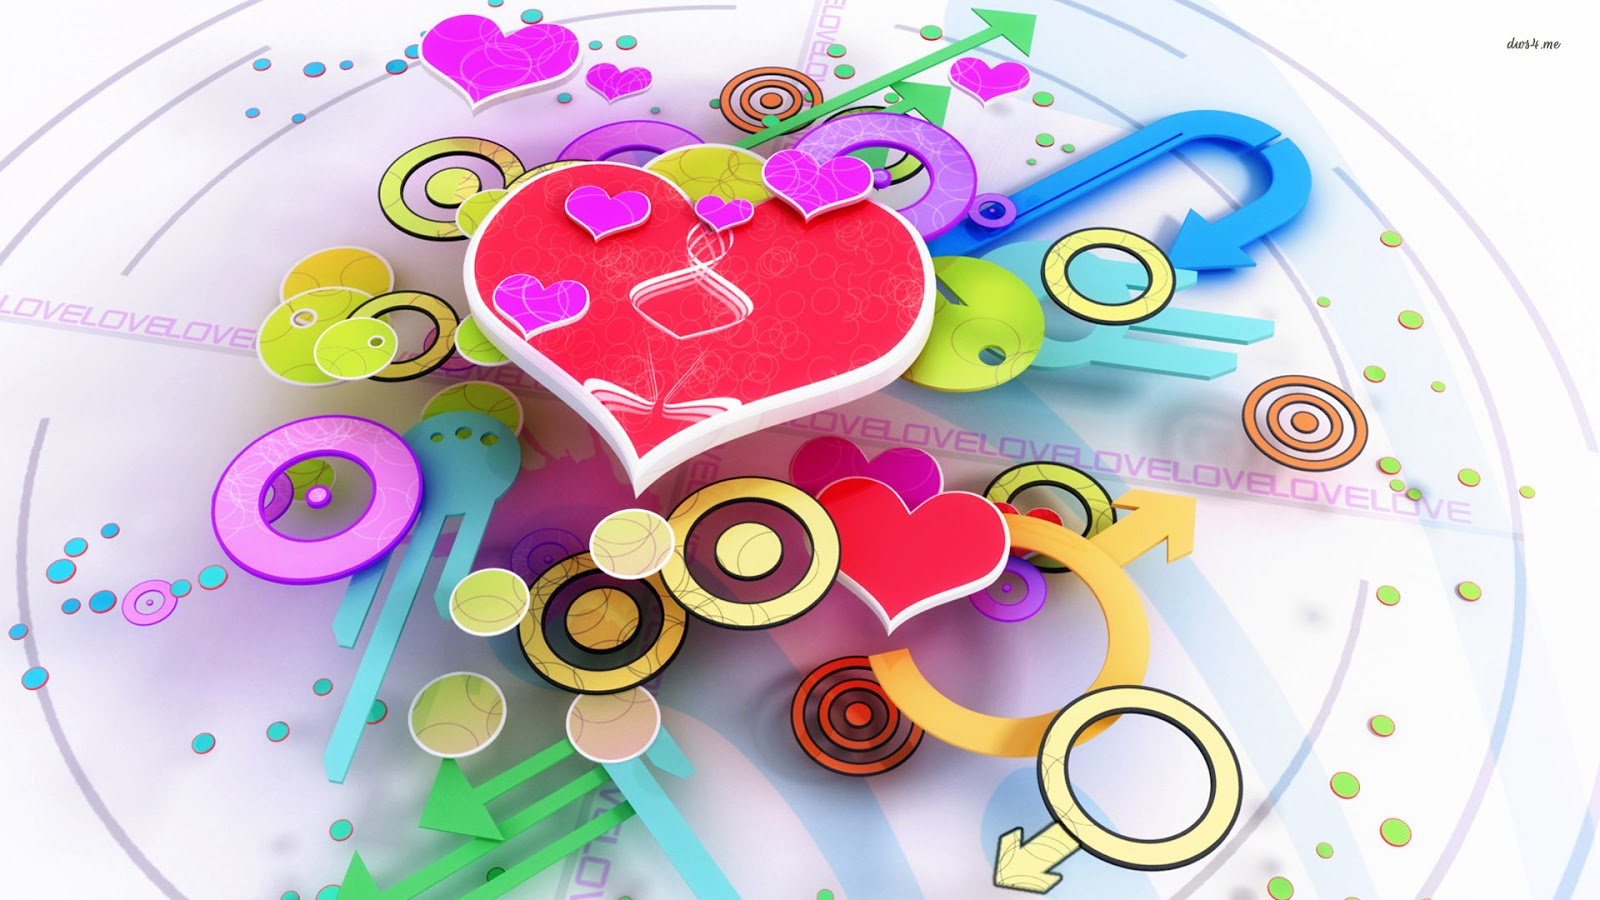 colorful-hearts-and-shapes-3d-wallpaper | Free Download Full HD